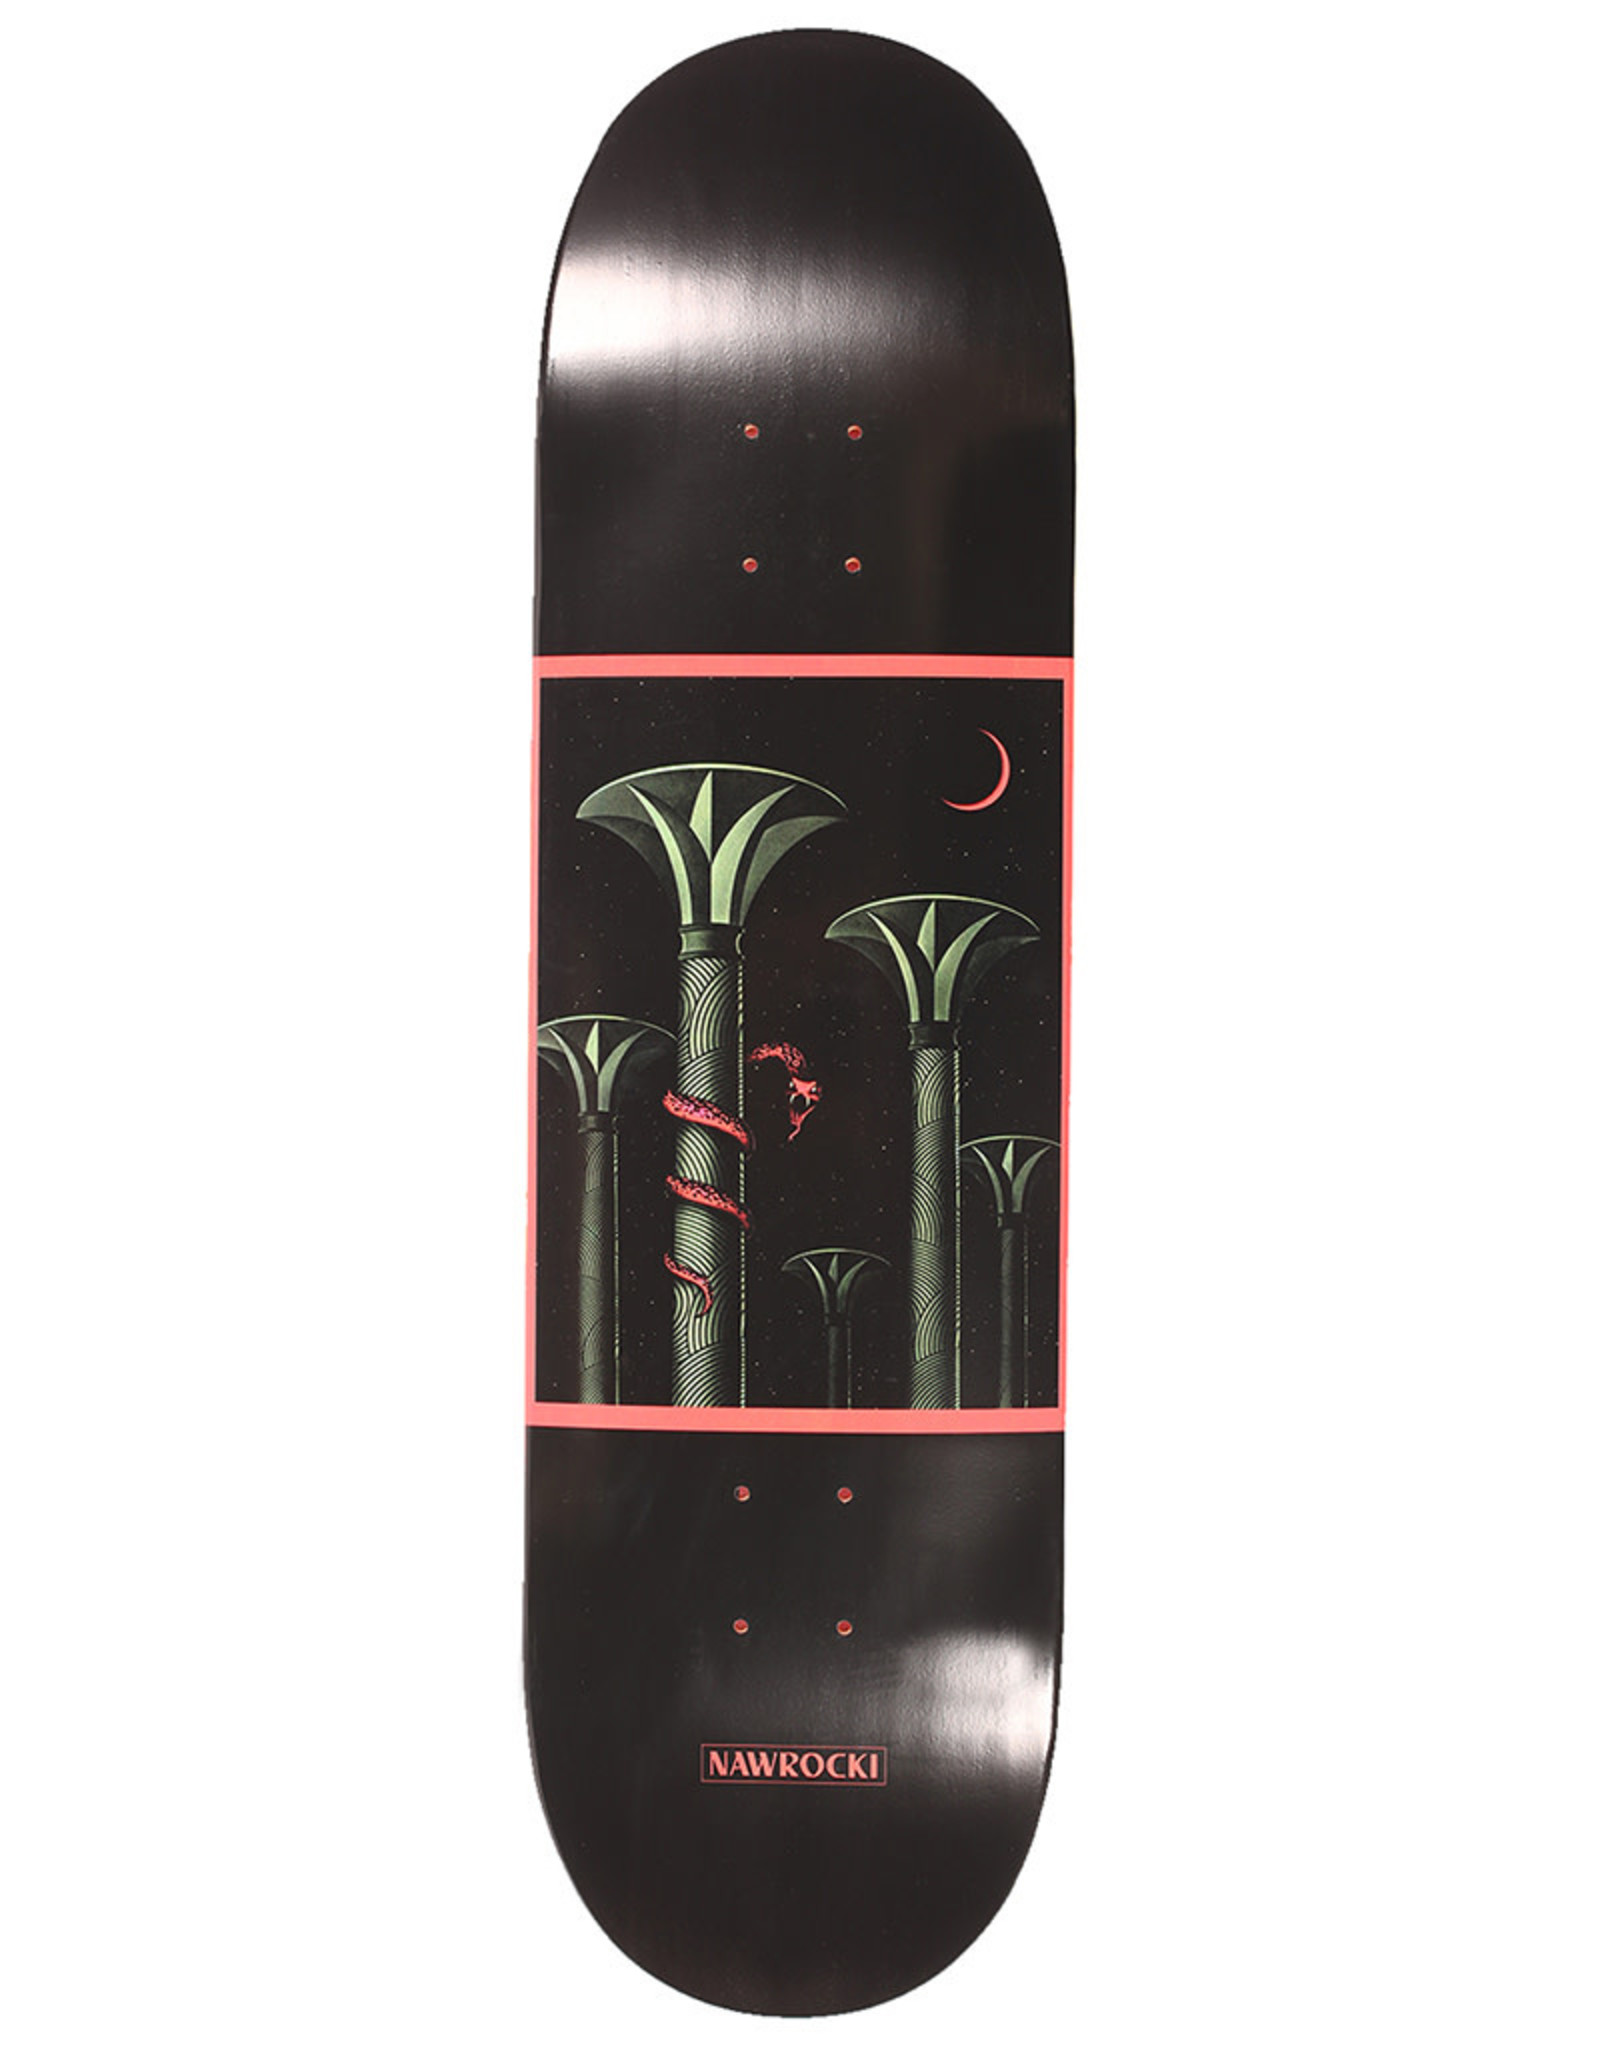 Picture Show Picture Show Deck Nawrocki Serpent (8.5)